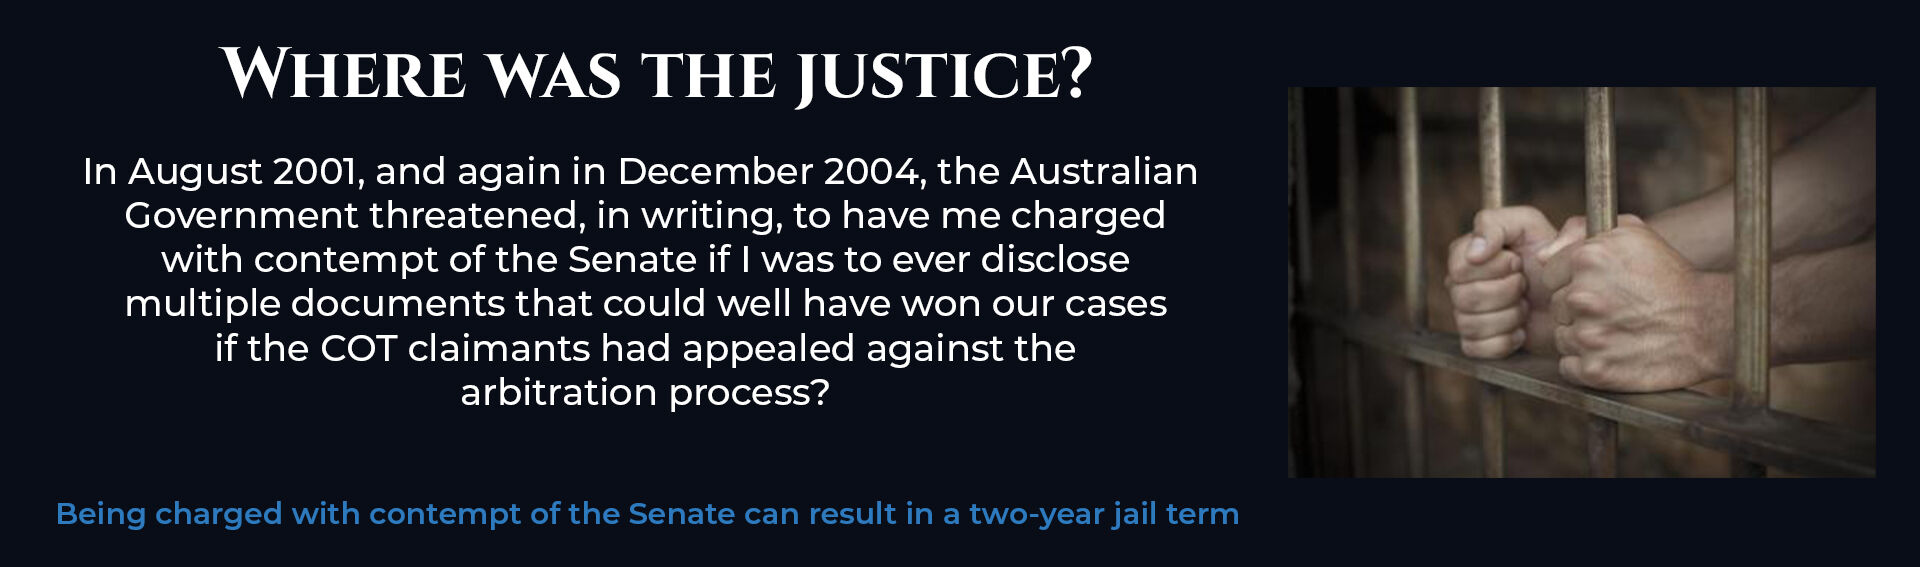 Absent Justice - Where was the Justice